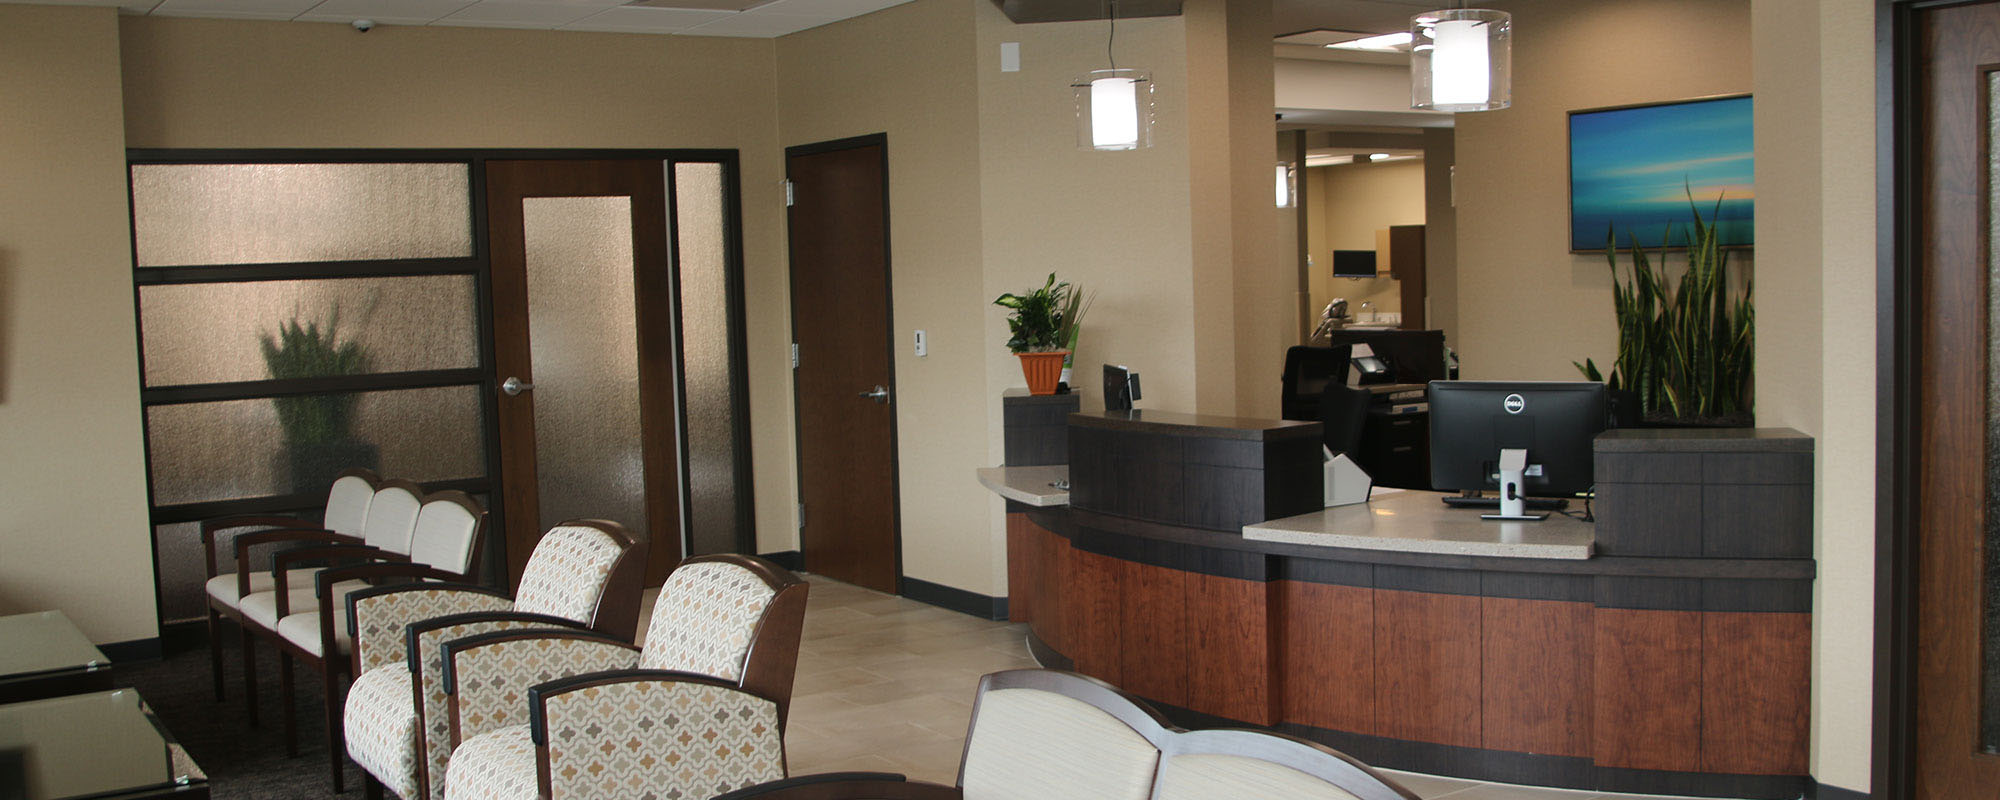 Dental Associates Alsip provides complete family dentistry from a state-of-the-art clinic